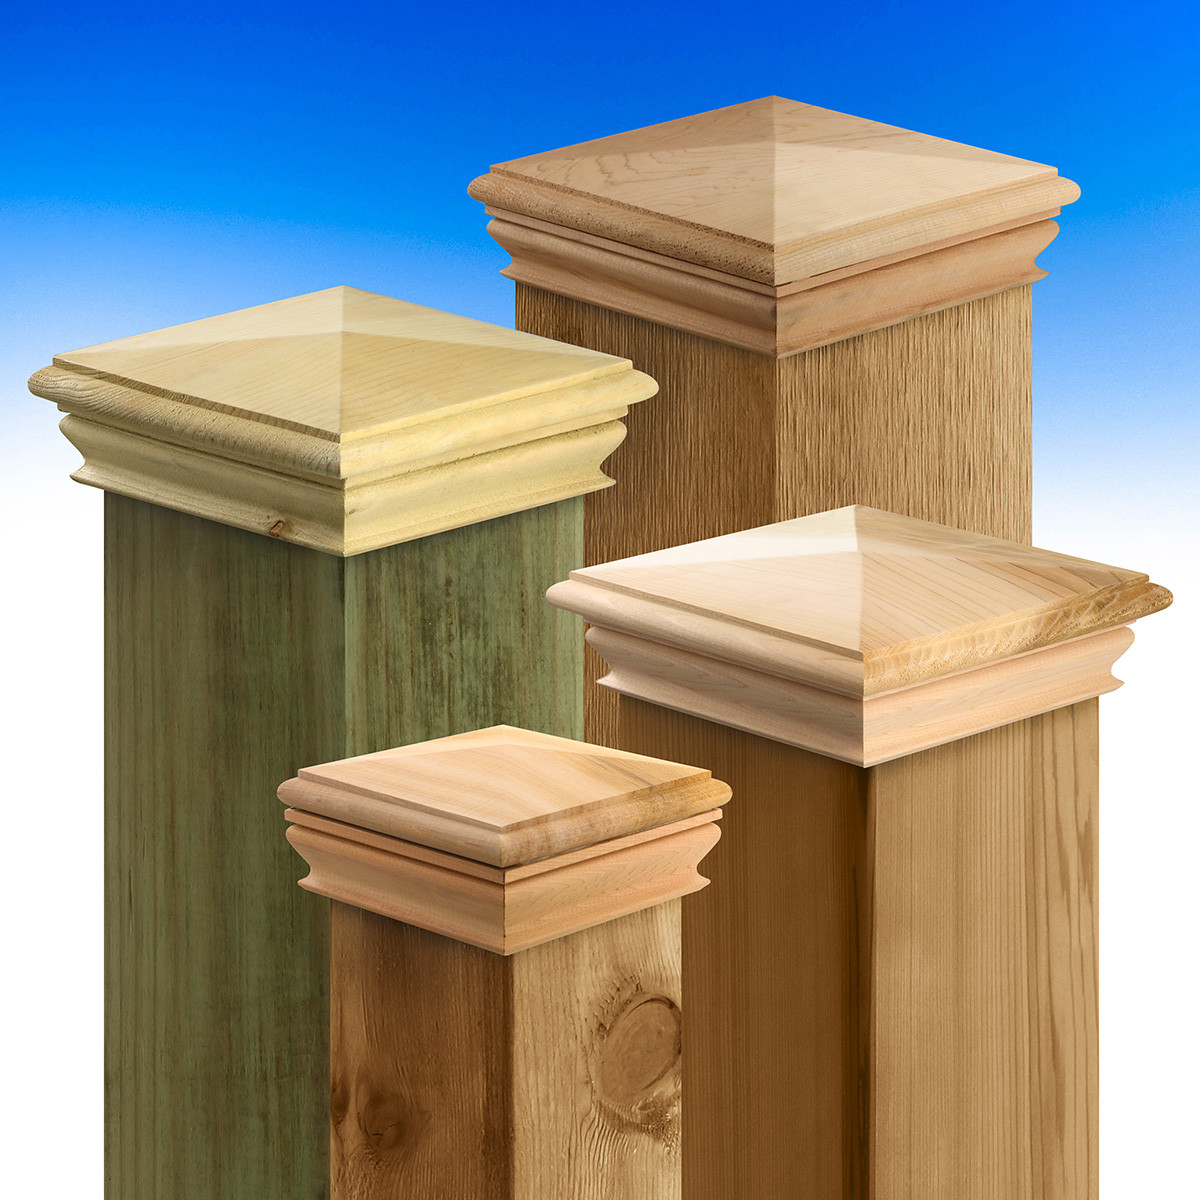 Wood Pyramid Top Post Cap by Woodway